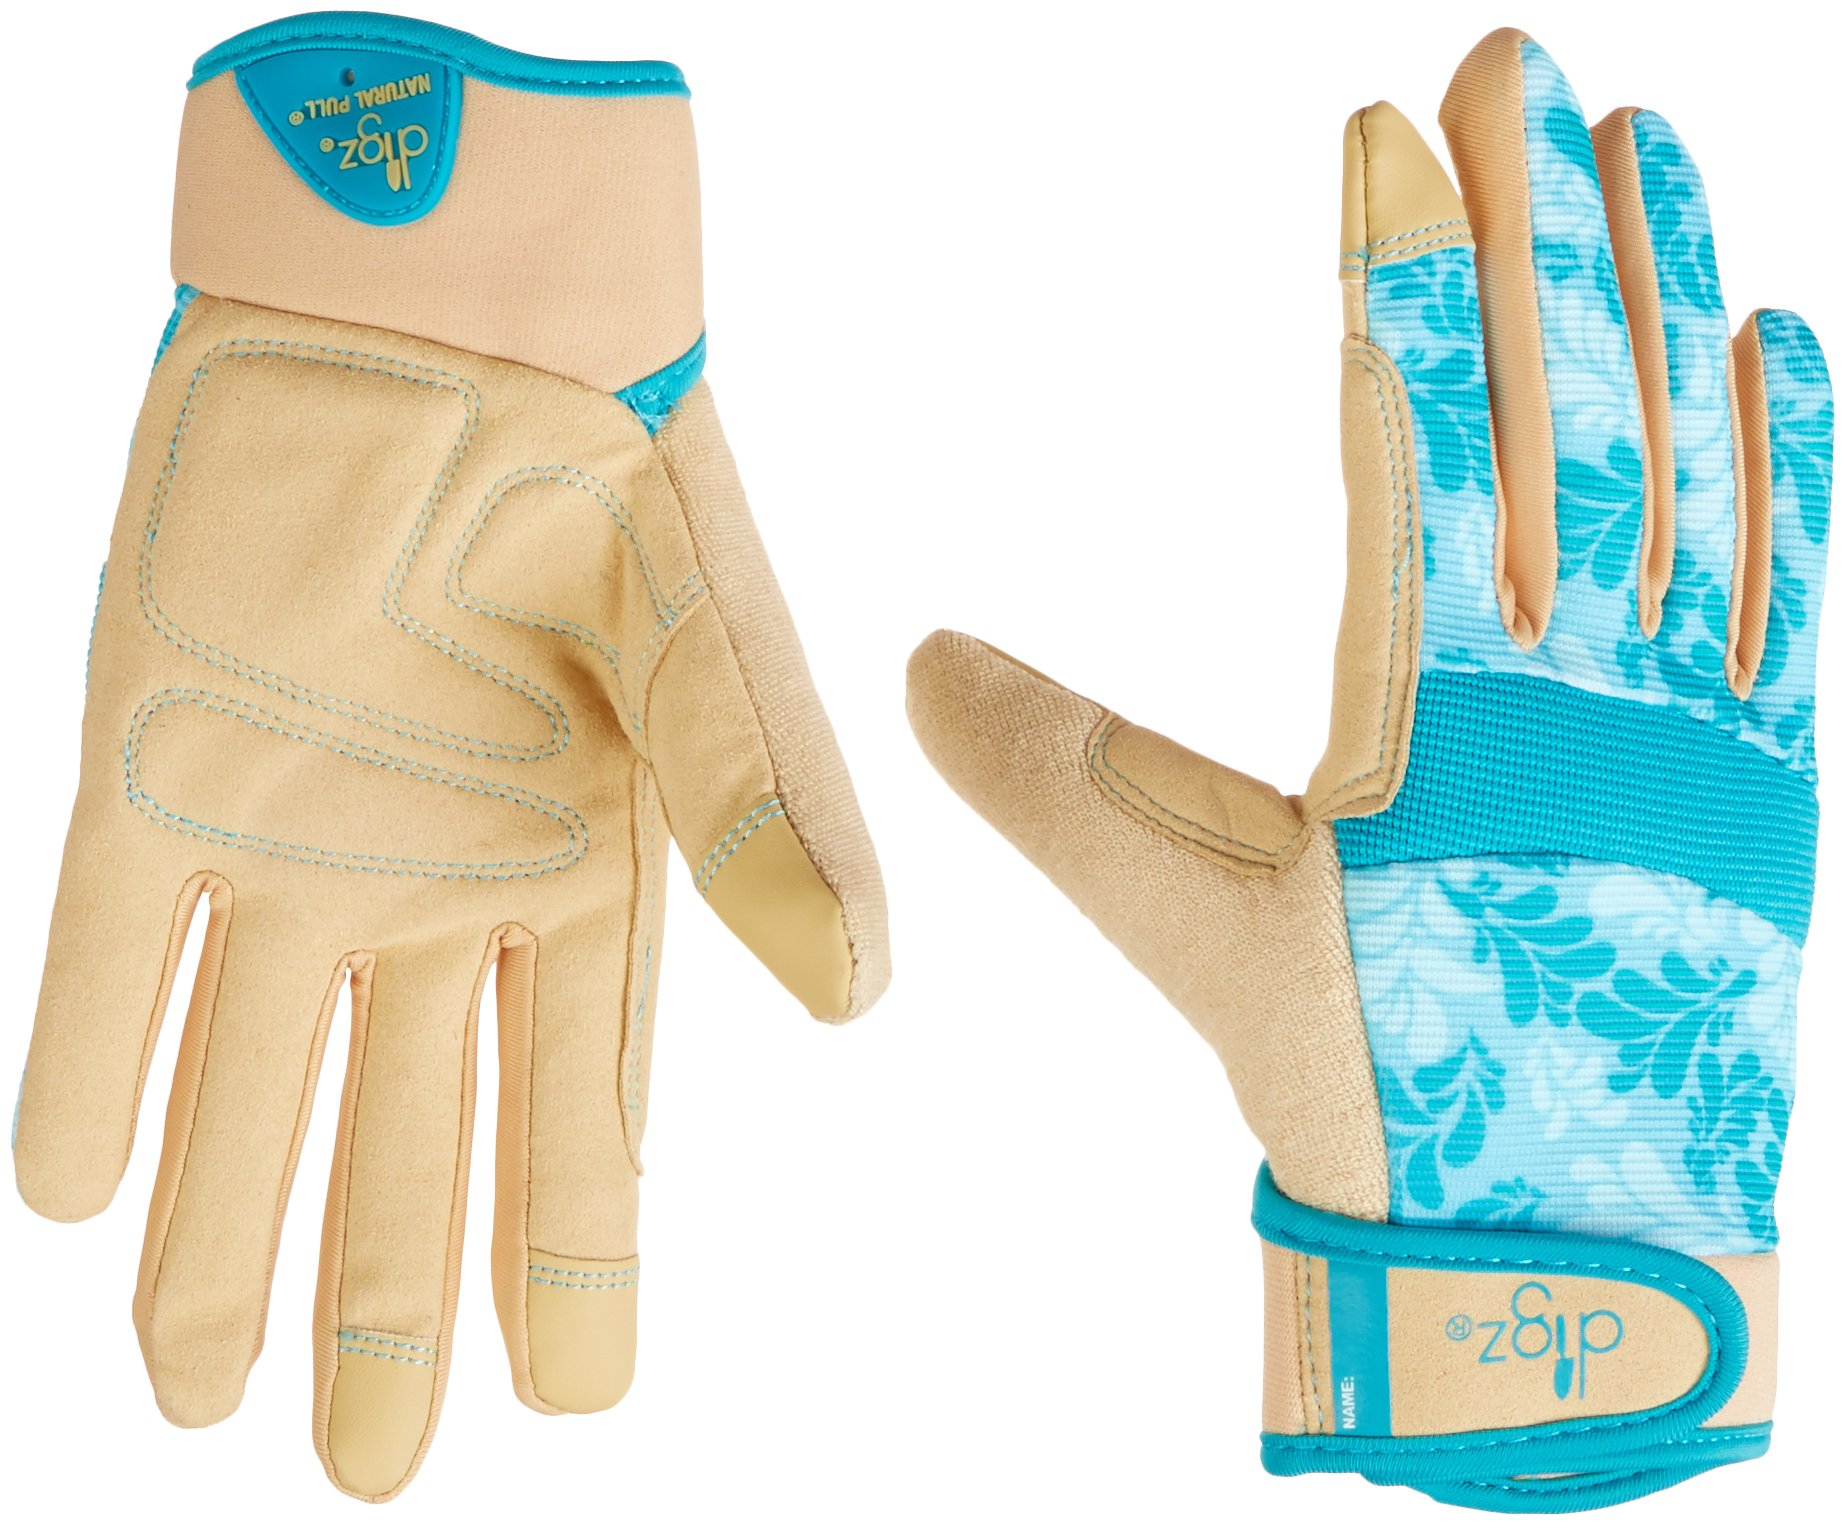 DIGZ Gardener High Performance Women's Gardening Gloves and Work Gloves with Touch Screen Compatible fingertips by DIGZ (Image #1)